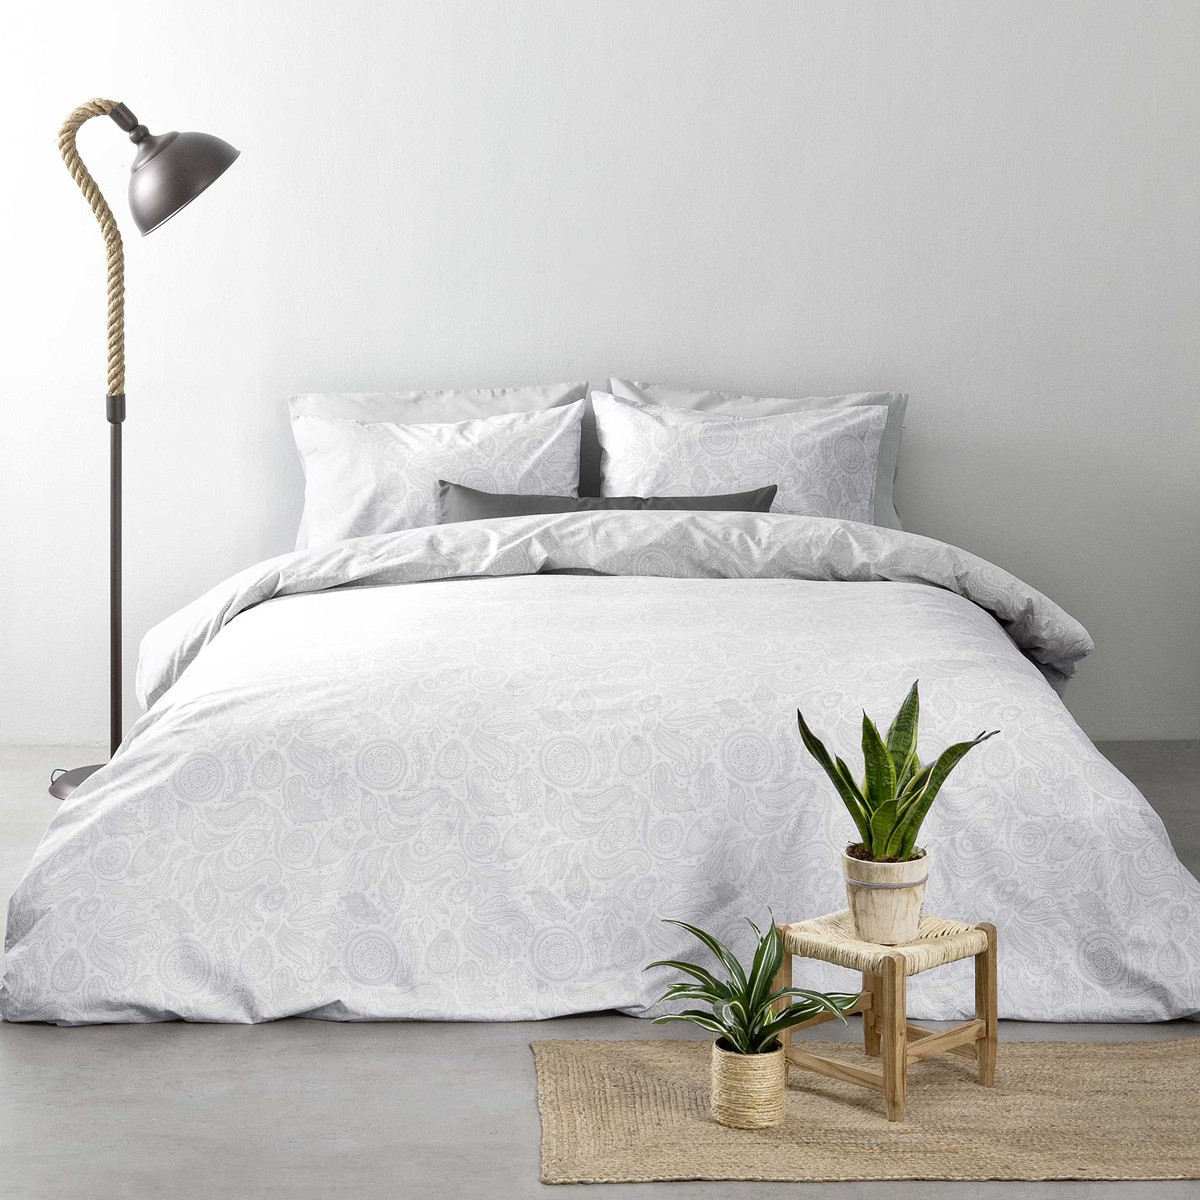 Κουβερλί Μονό Nima Bed Linen Jaipur Grey